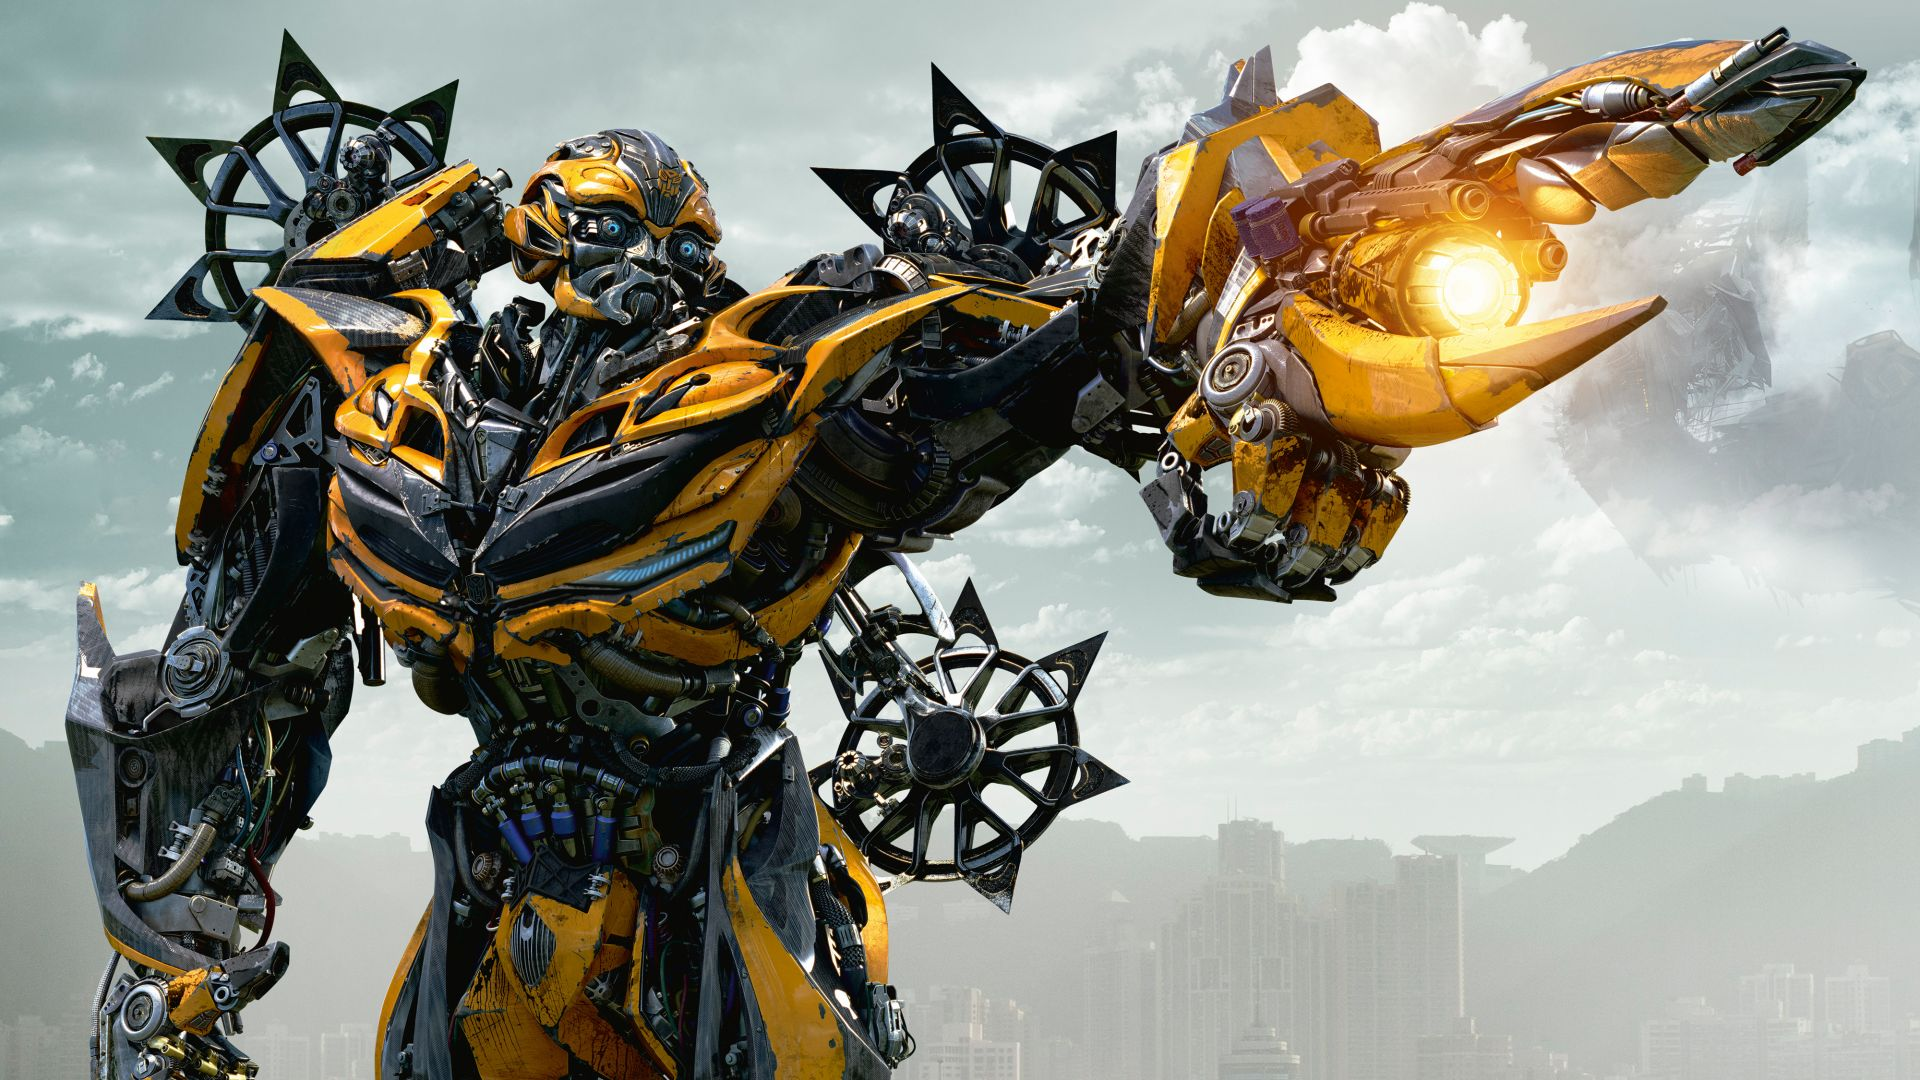 wallpaper transformers the last knight transformers 5 bumblebee best movies movies 13269. Black Bedroom Furniture Sets. Home Design Ideas